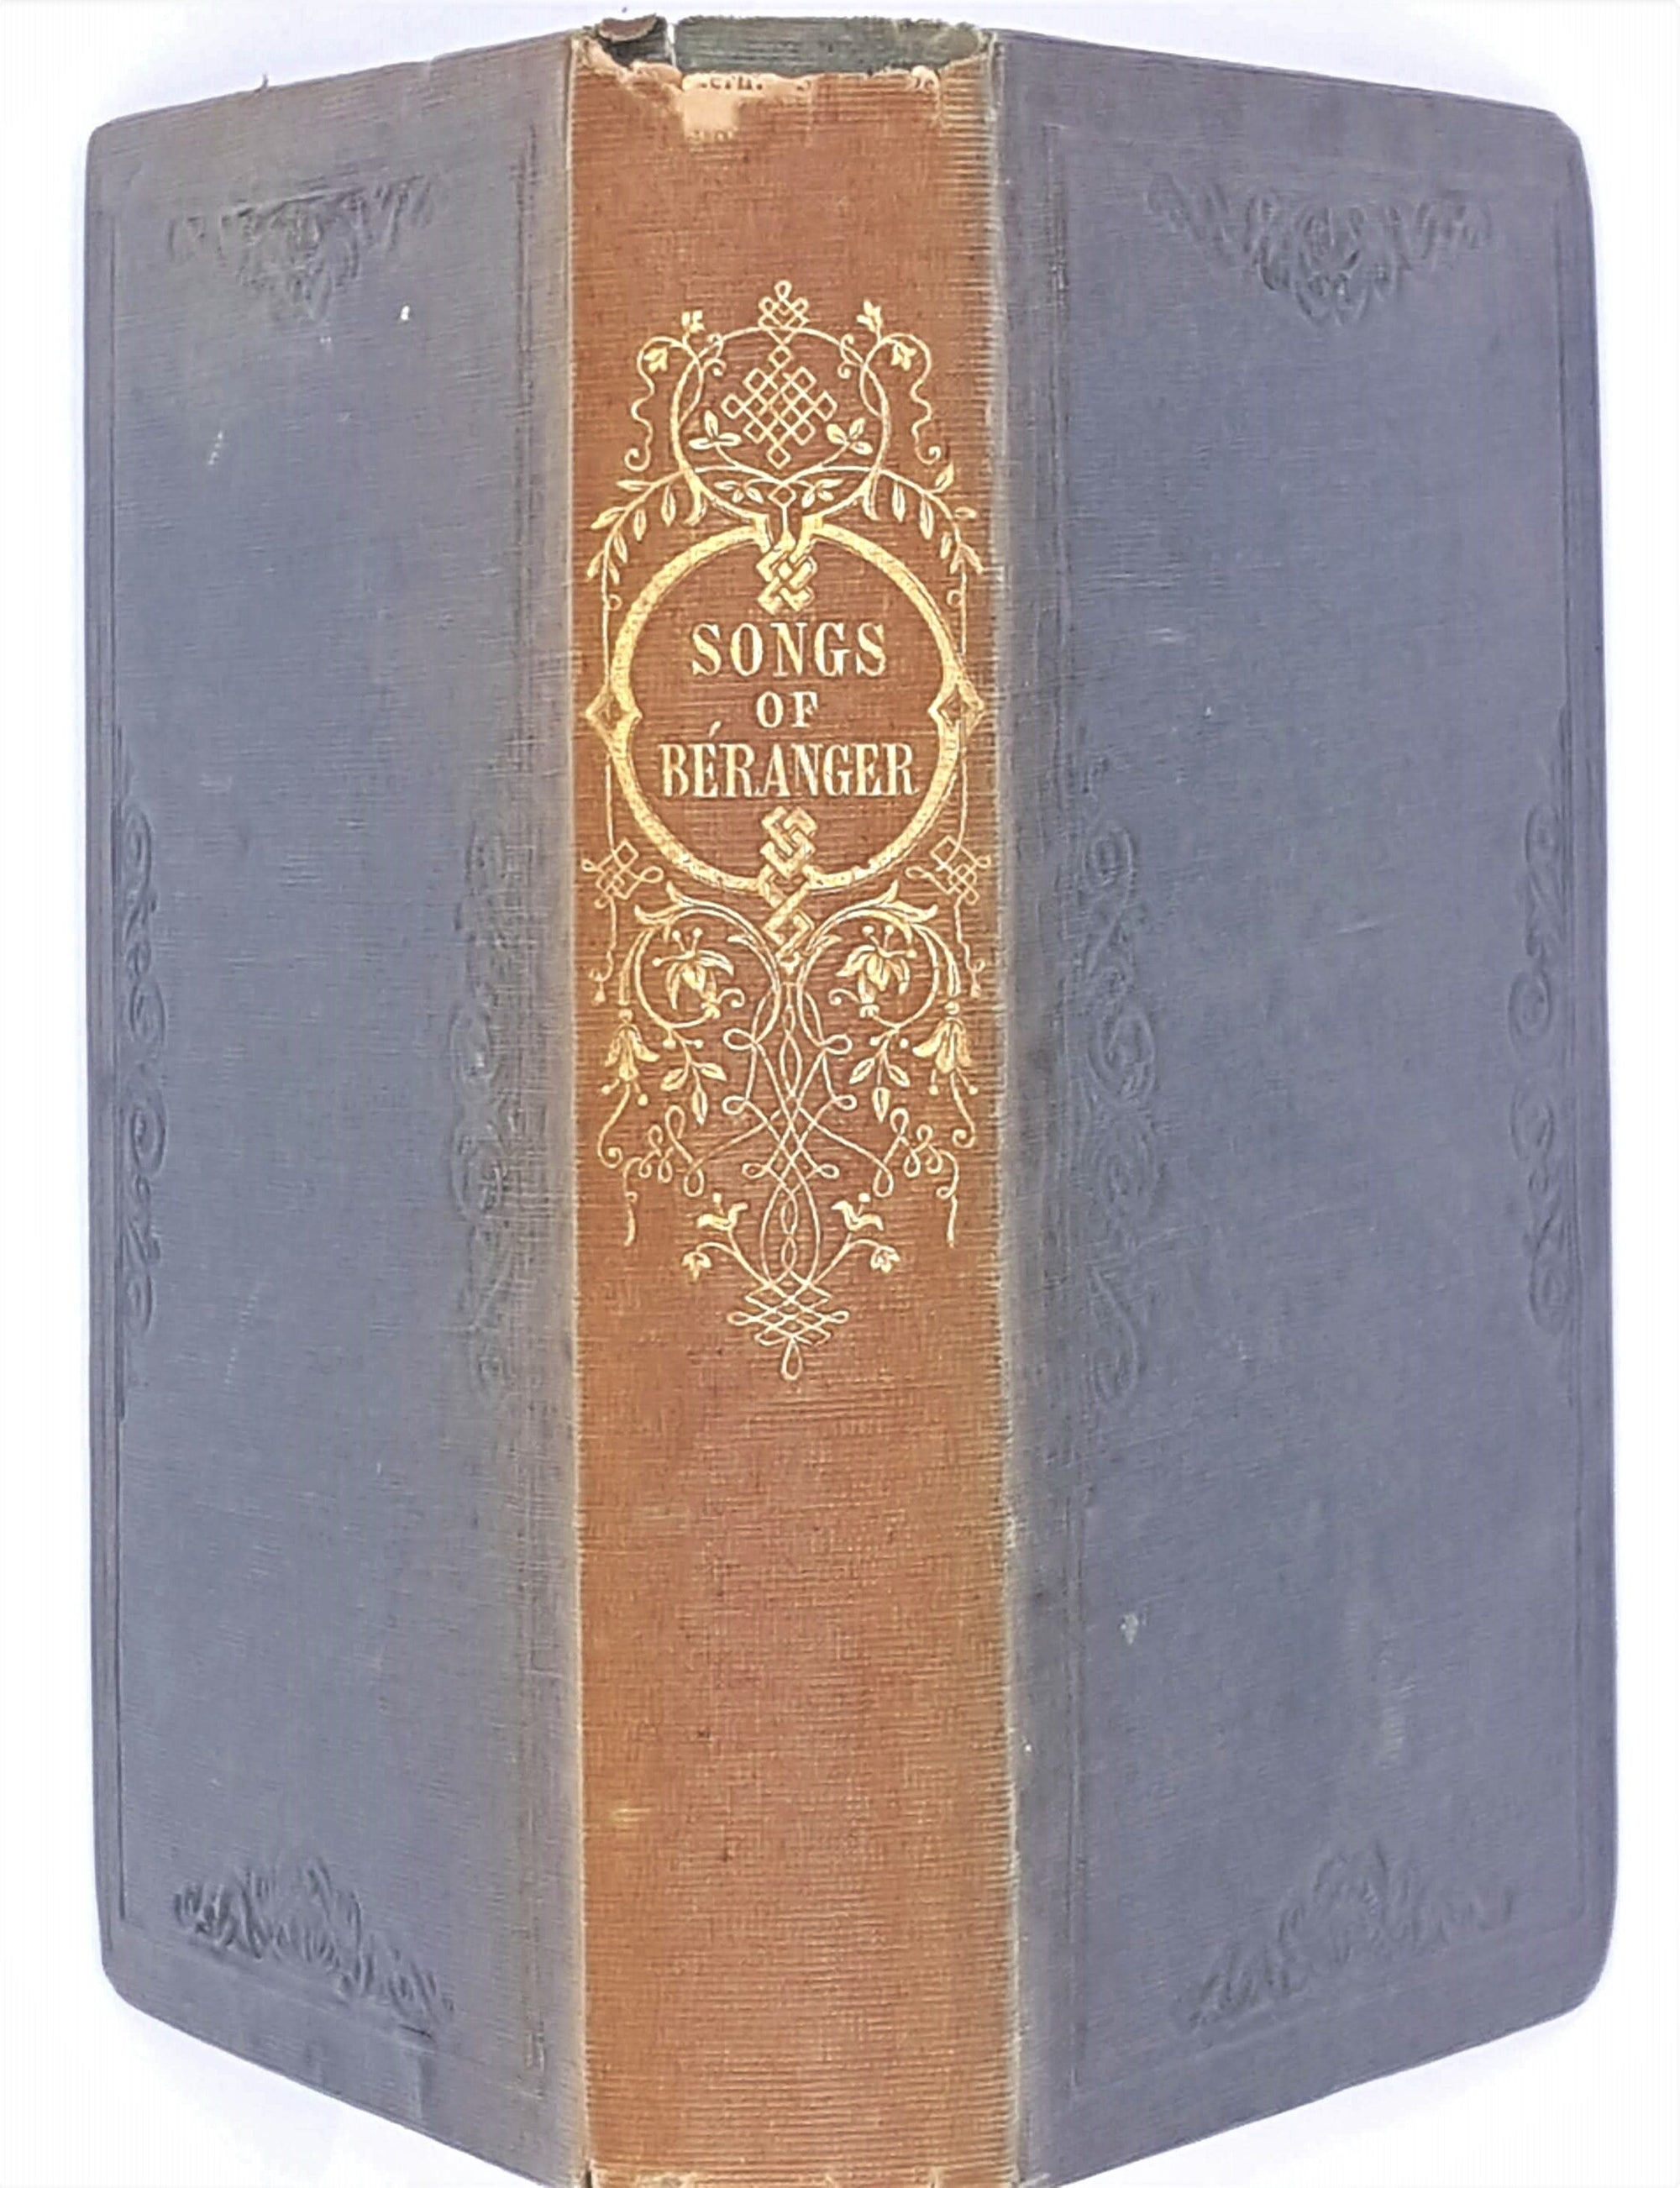 One Hundred Songs of Pierre-Jean de Beranger 1847